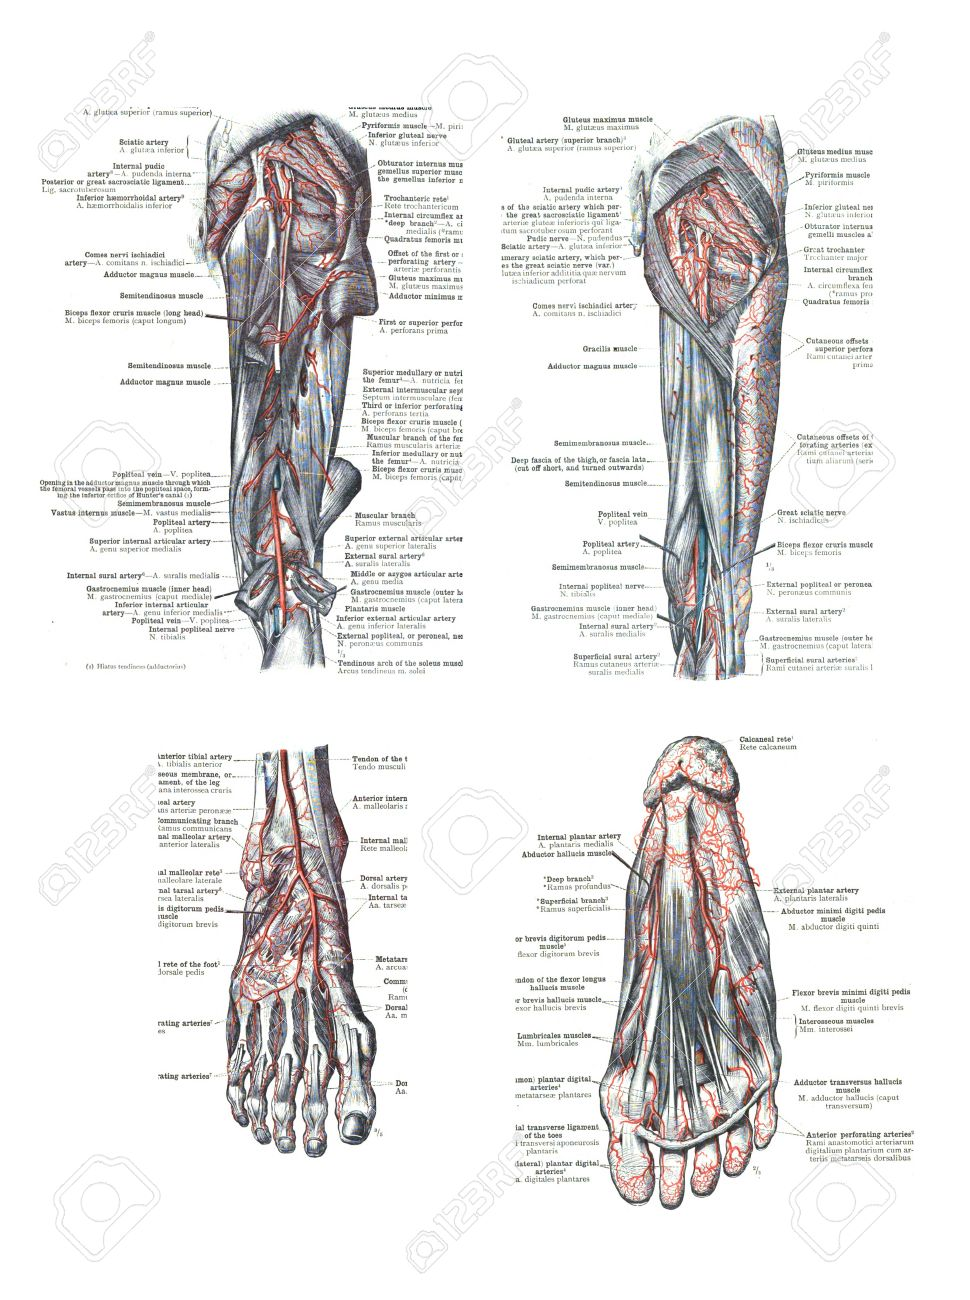 4 Views Of The Human Foot And Leg From An Atlas Of Human Anatomy